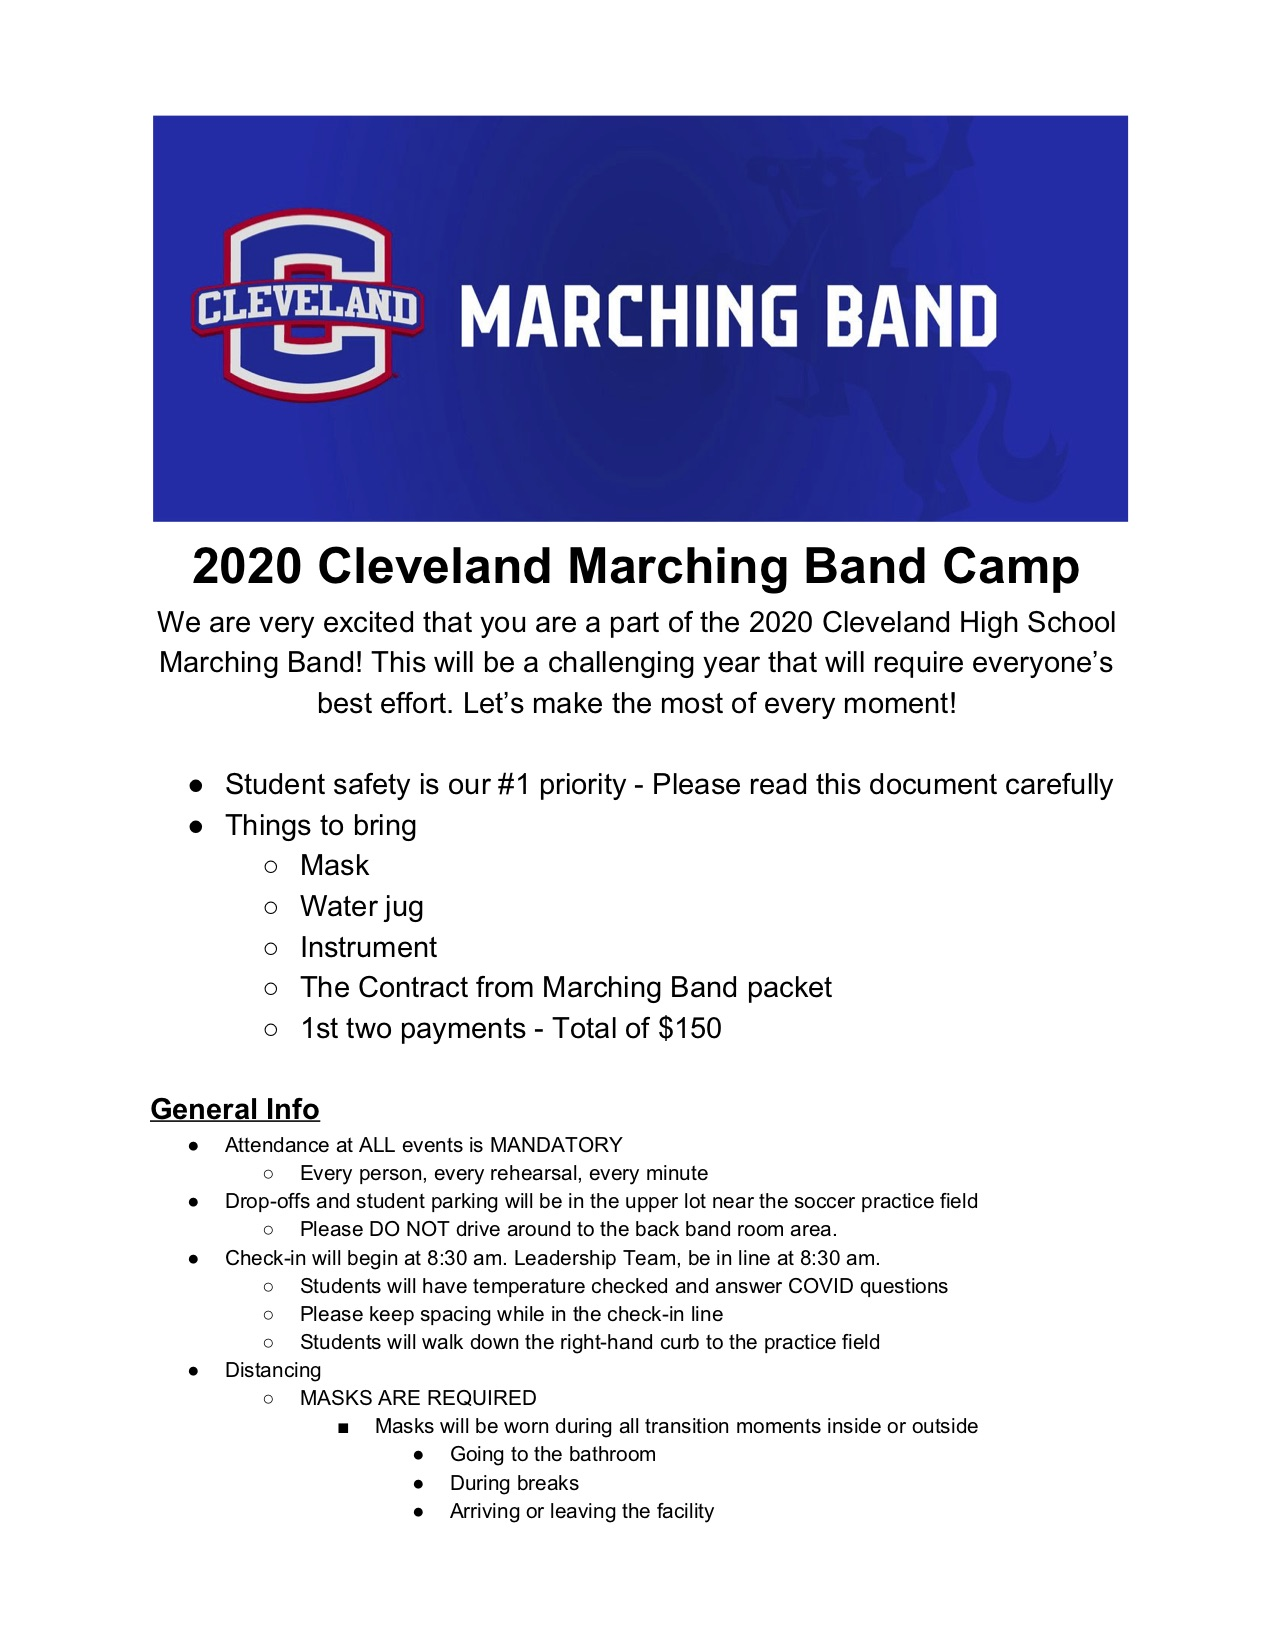 2020 CHS Marching Band Camp